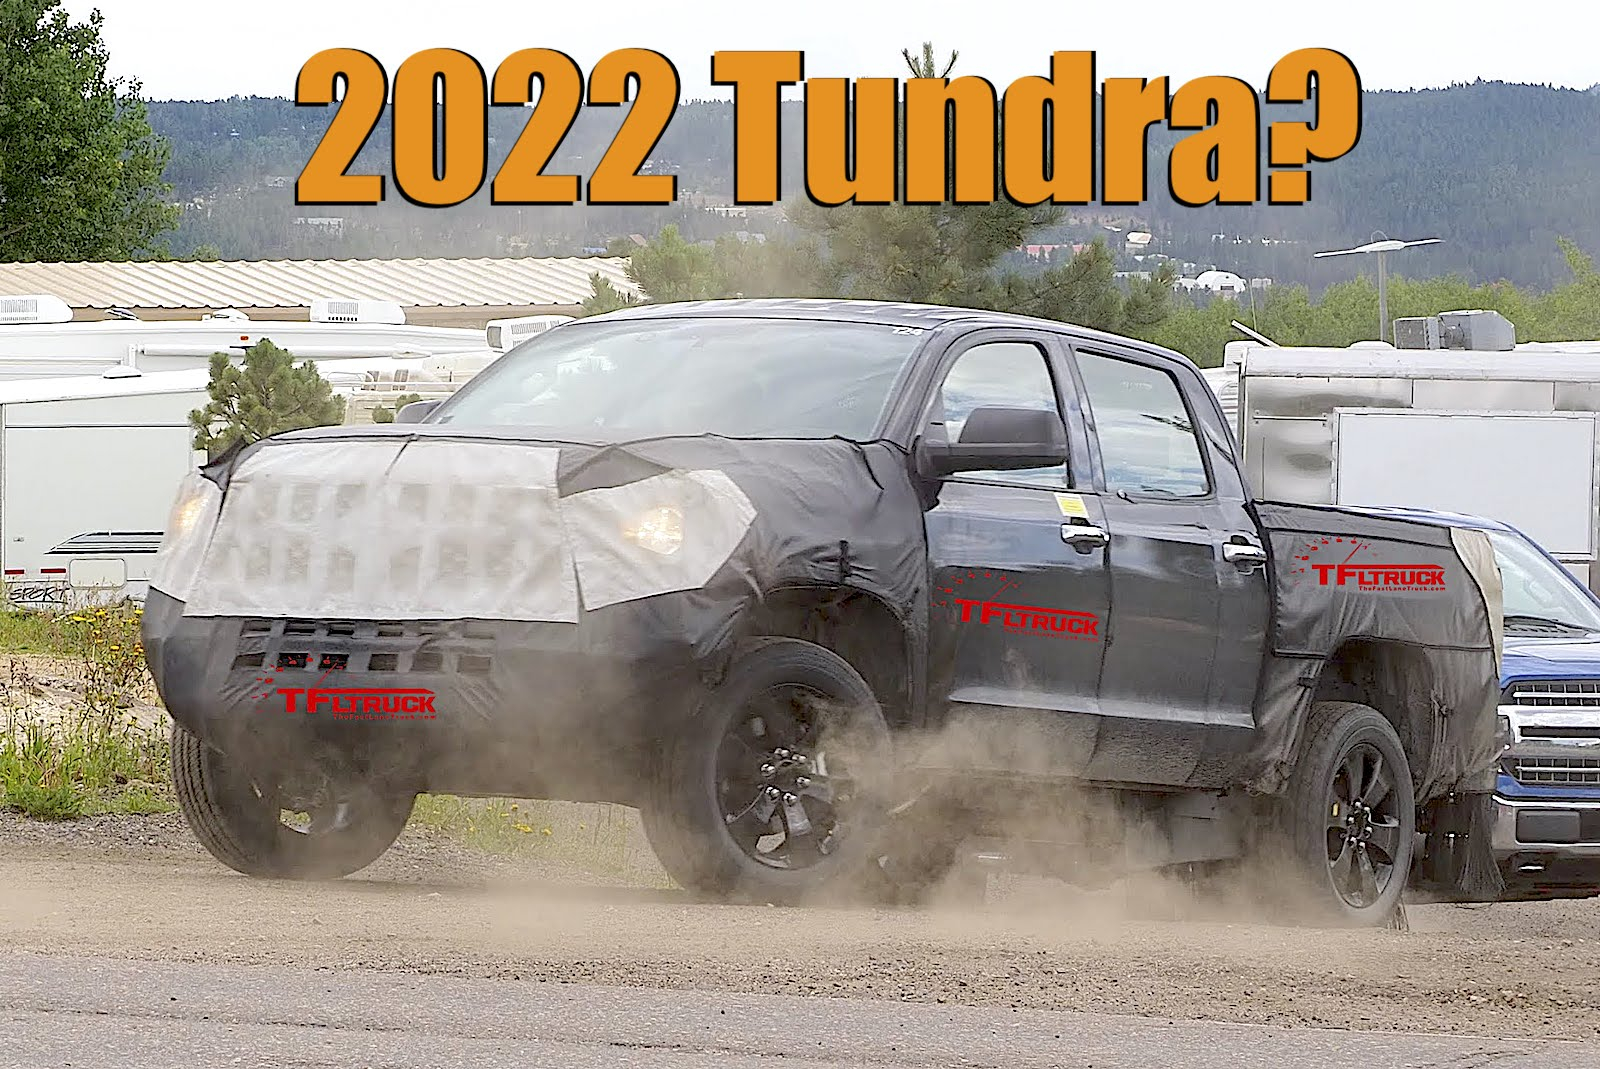 Toyota Trademarks 'i-Force Max': Could This Be An All-New 2022 Chevrolet Silverado 1500 Dimensions, Engine, Forum